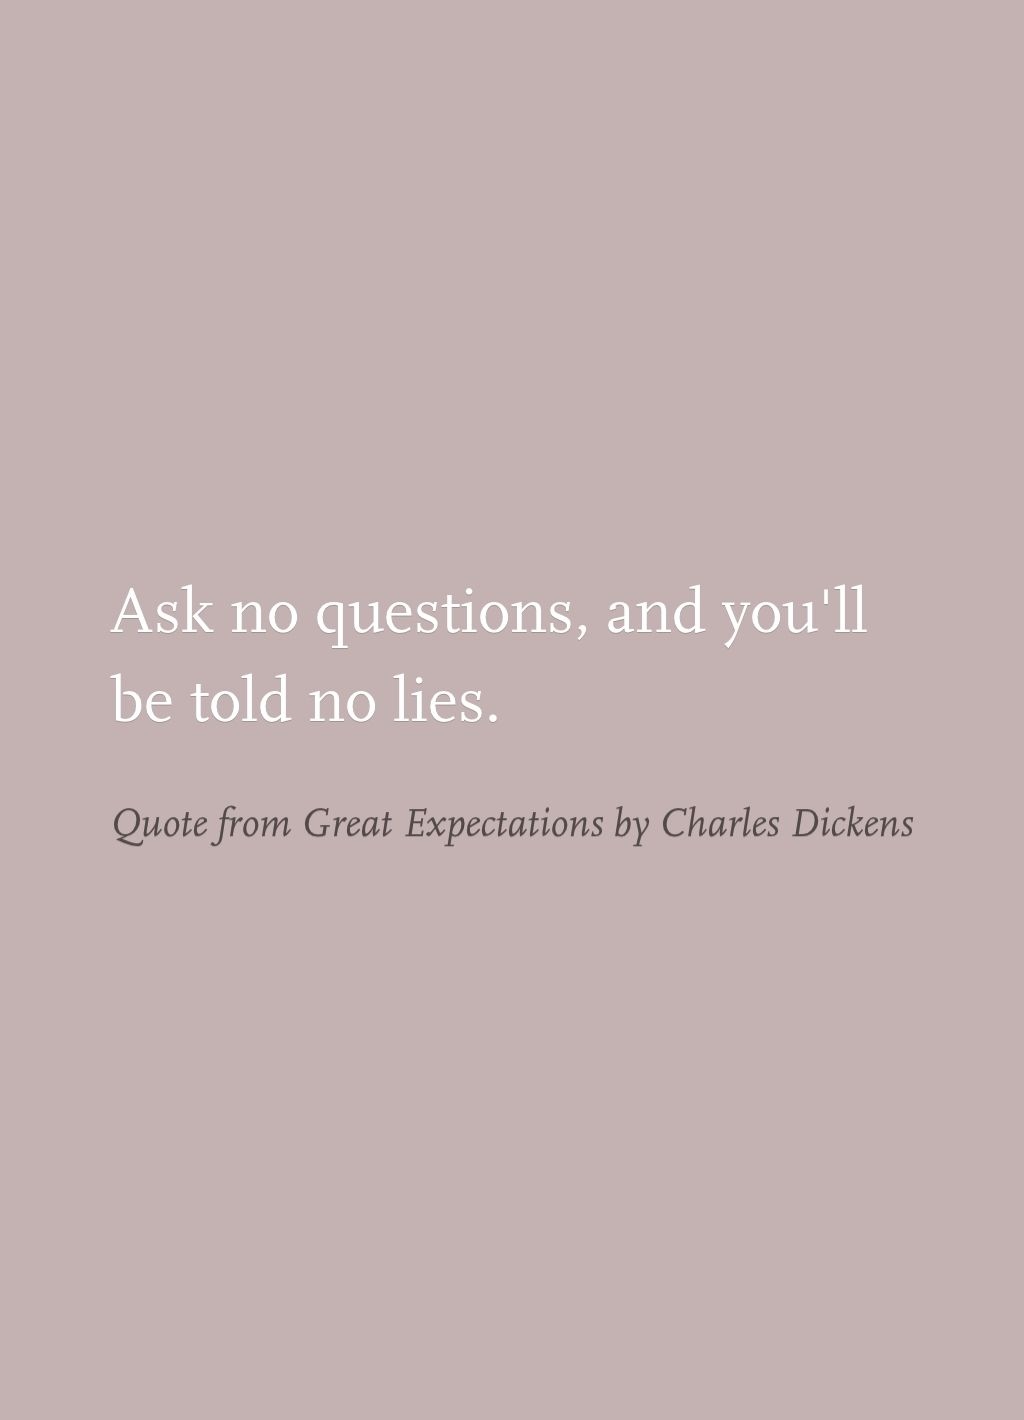 charles dickens quotation mouse pad great expectations oliver charles dickens quotation mouse pad great expectations oliver twist and twists